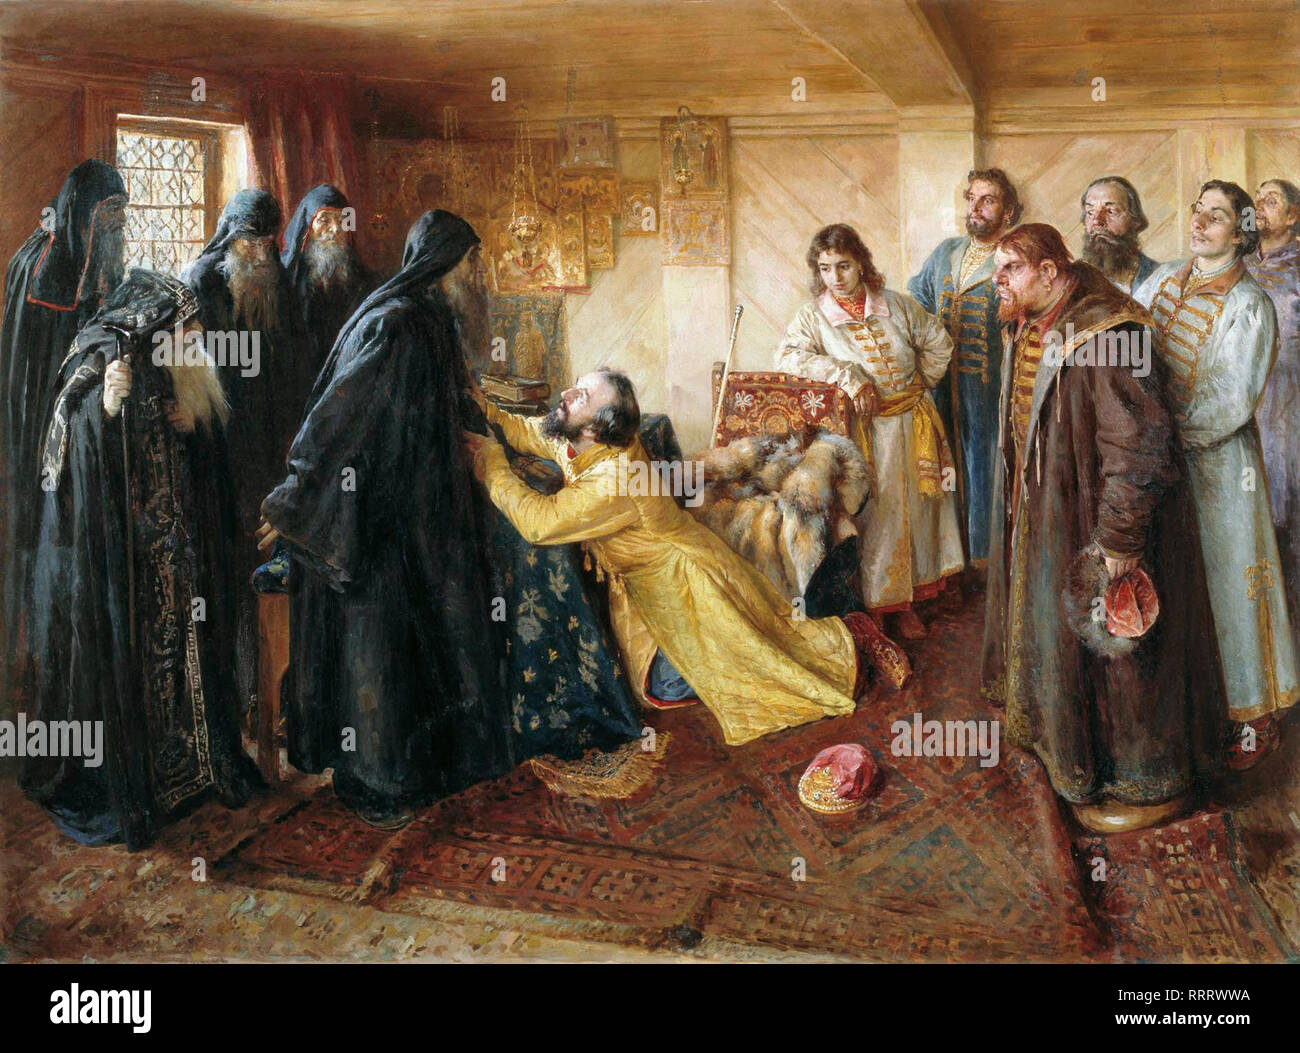 Tsar Ivan the Terrible asks hiegumen Kornily to admit him into monks - Klavdy Lebedev - Stock Image